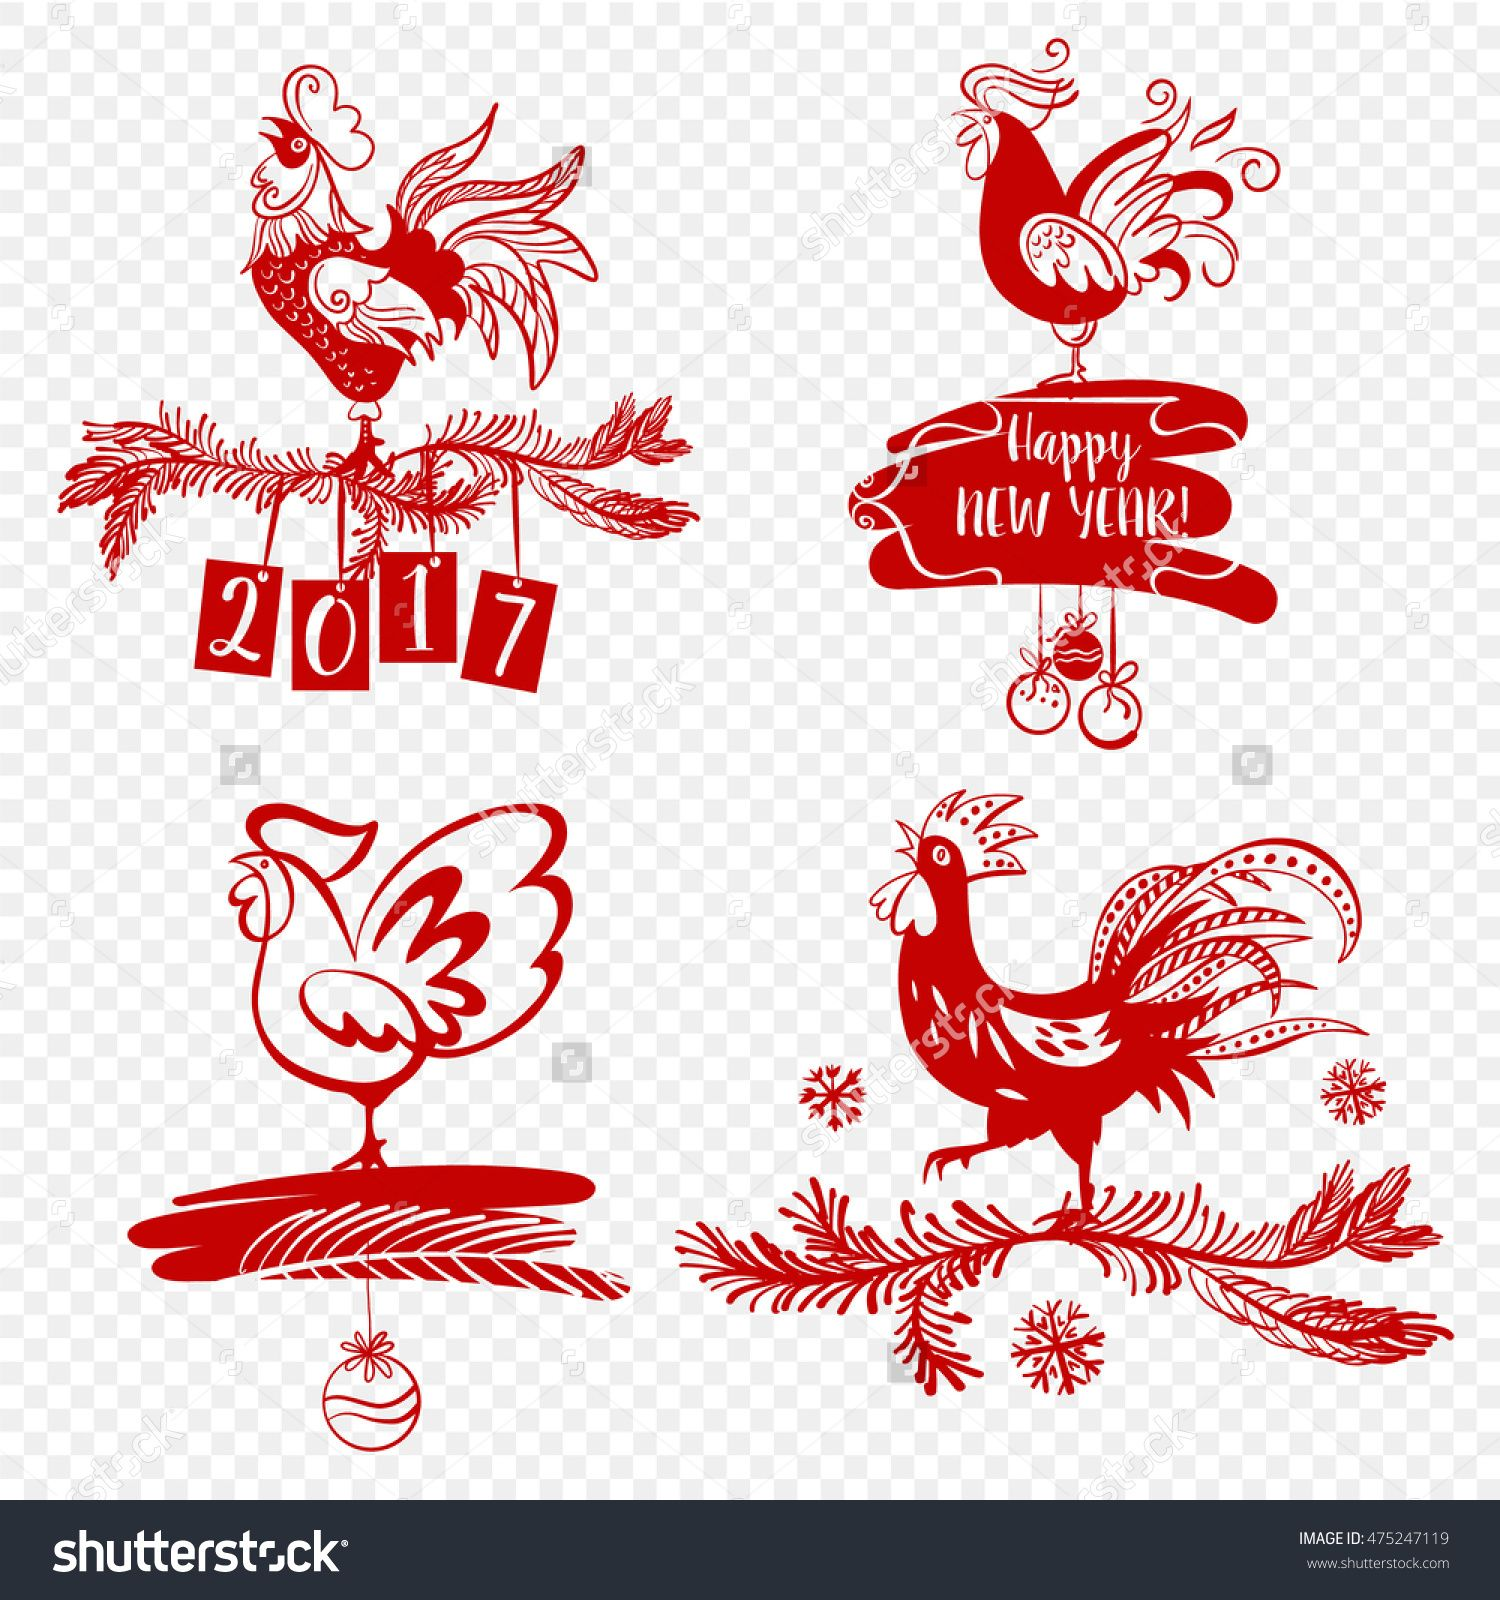 Illustration For Happy New Year 2017 Red Rooster Silhouette Cock